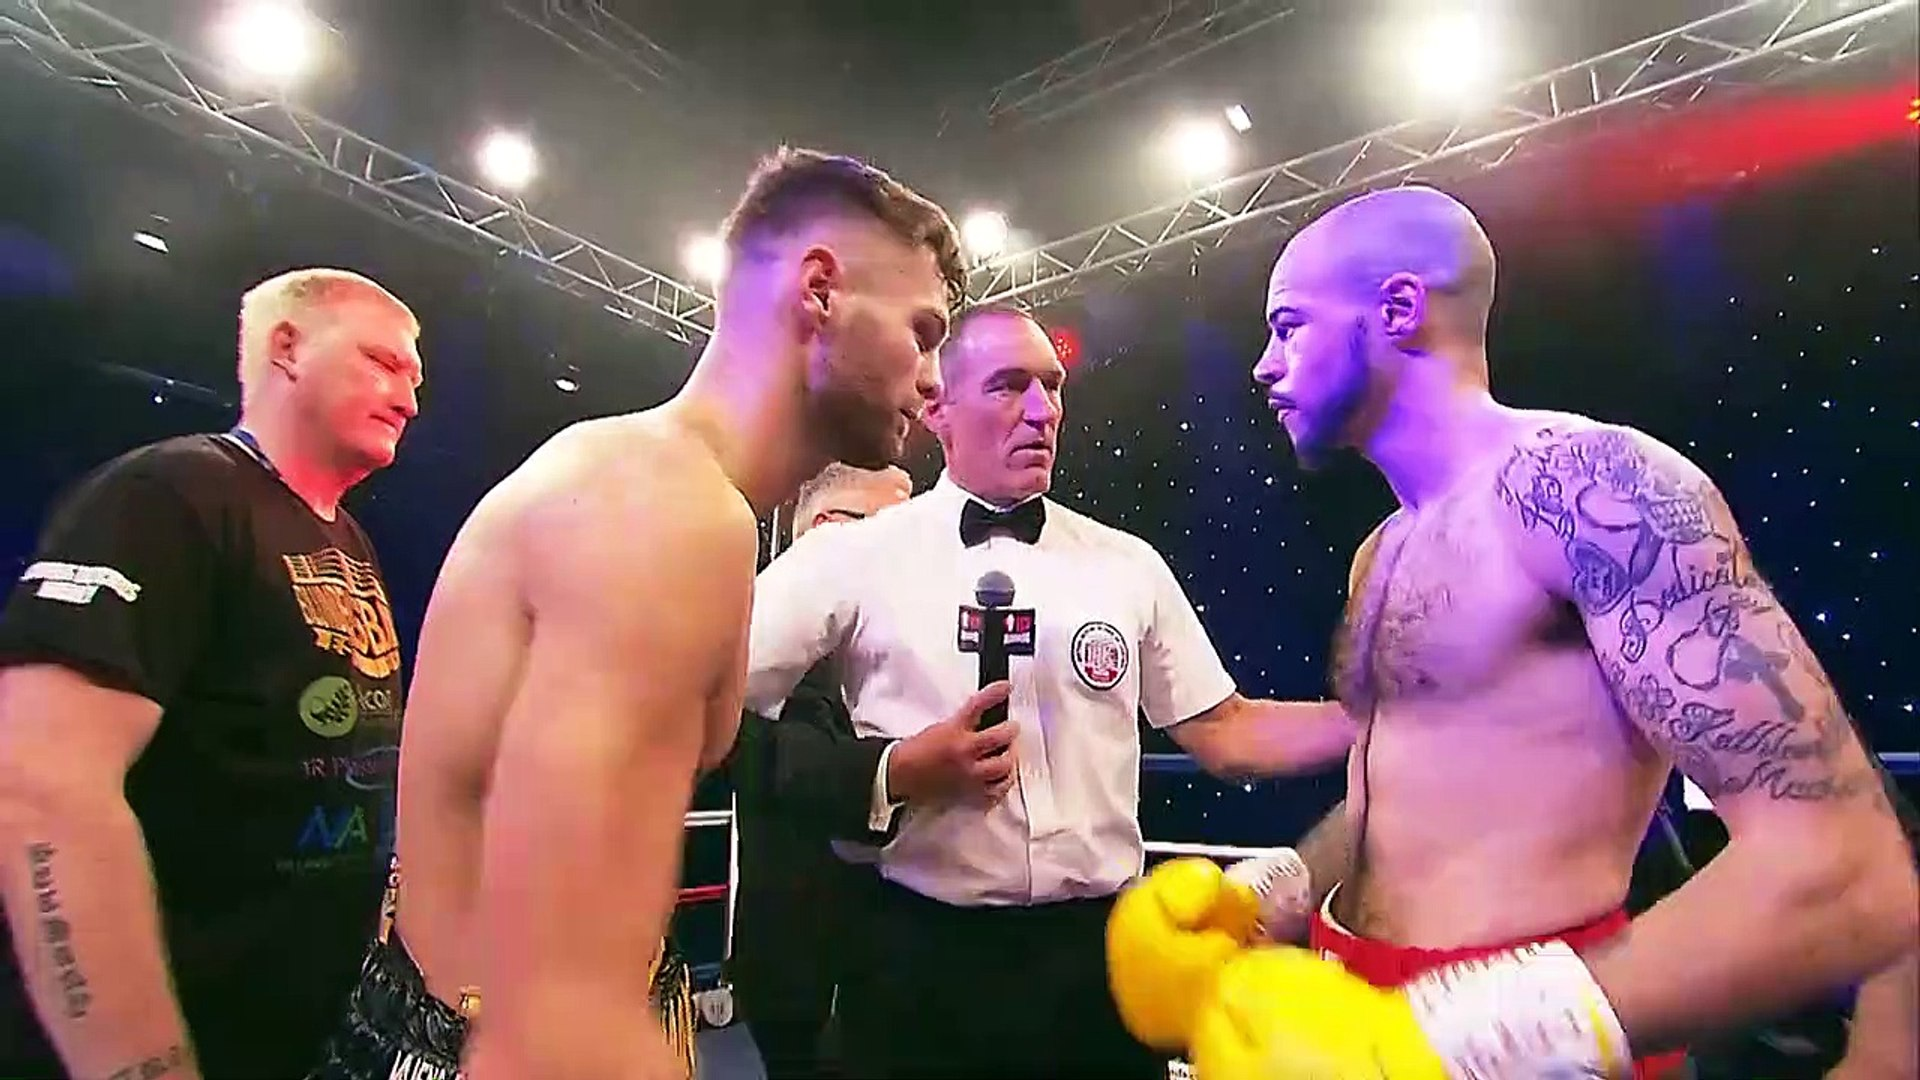 James Moorcroft vs Simon Henry (09-03-2019) Full Fight 720 x 1280